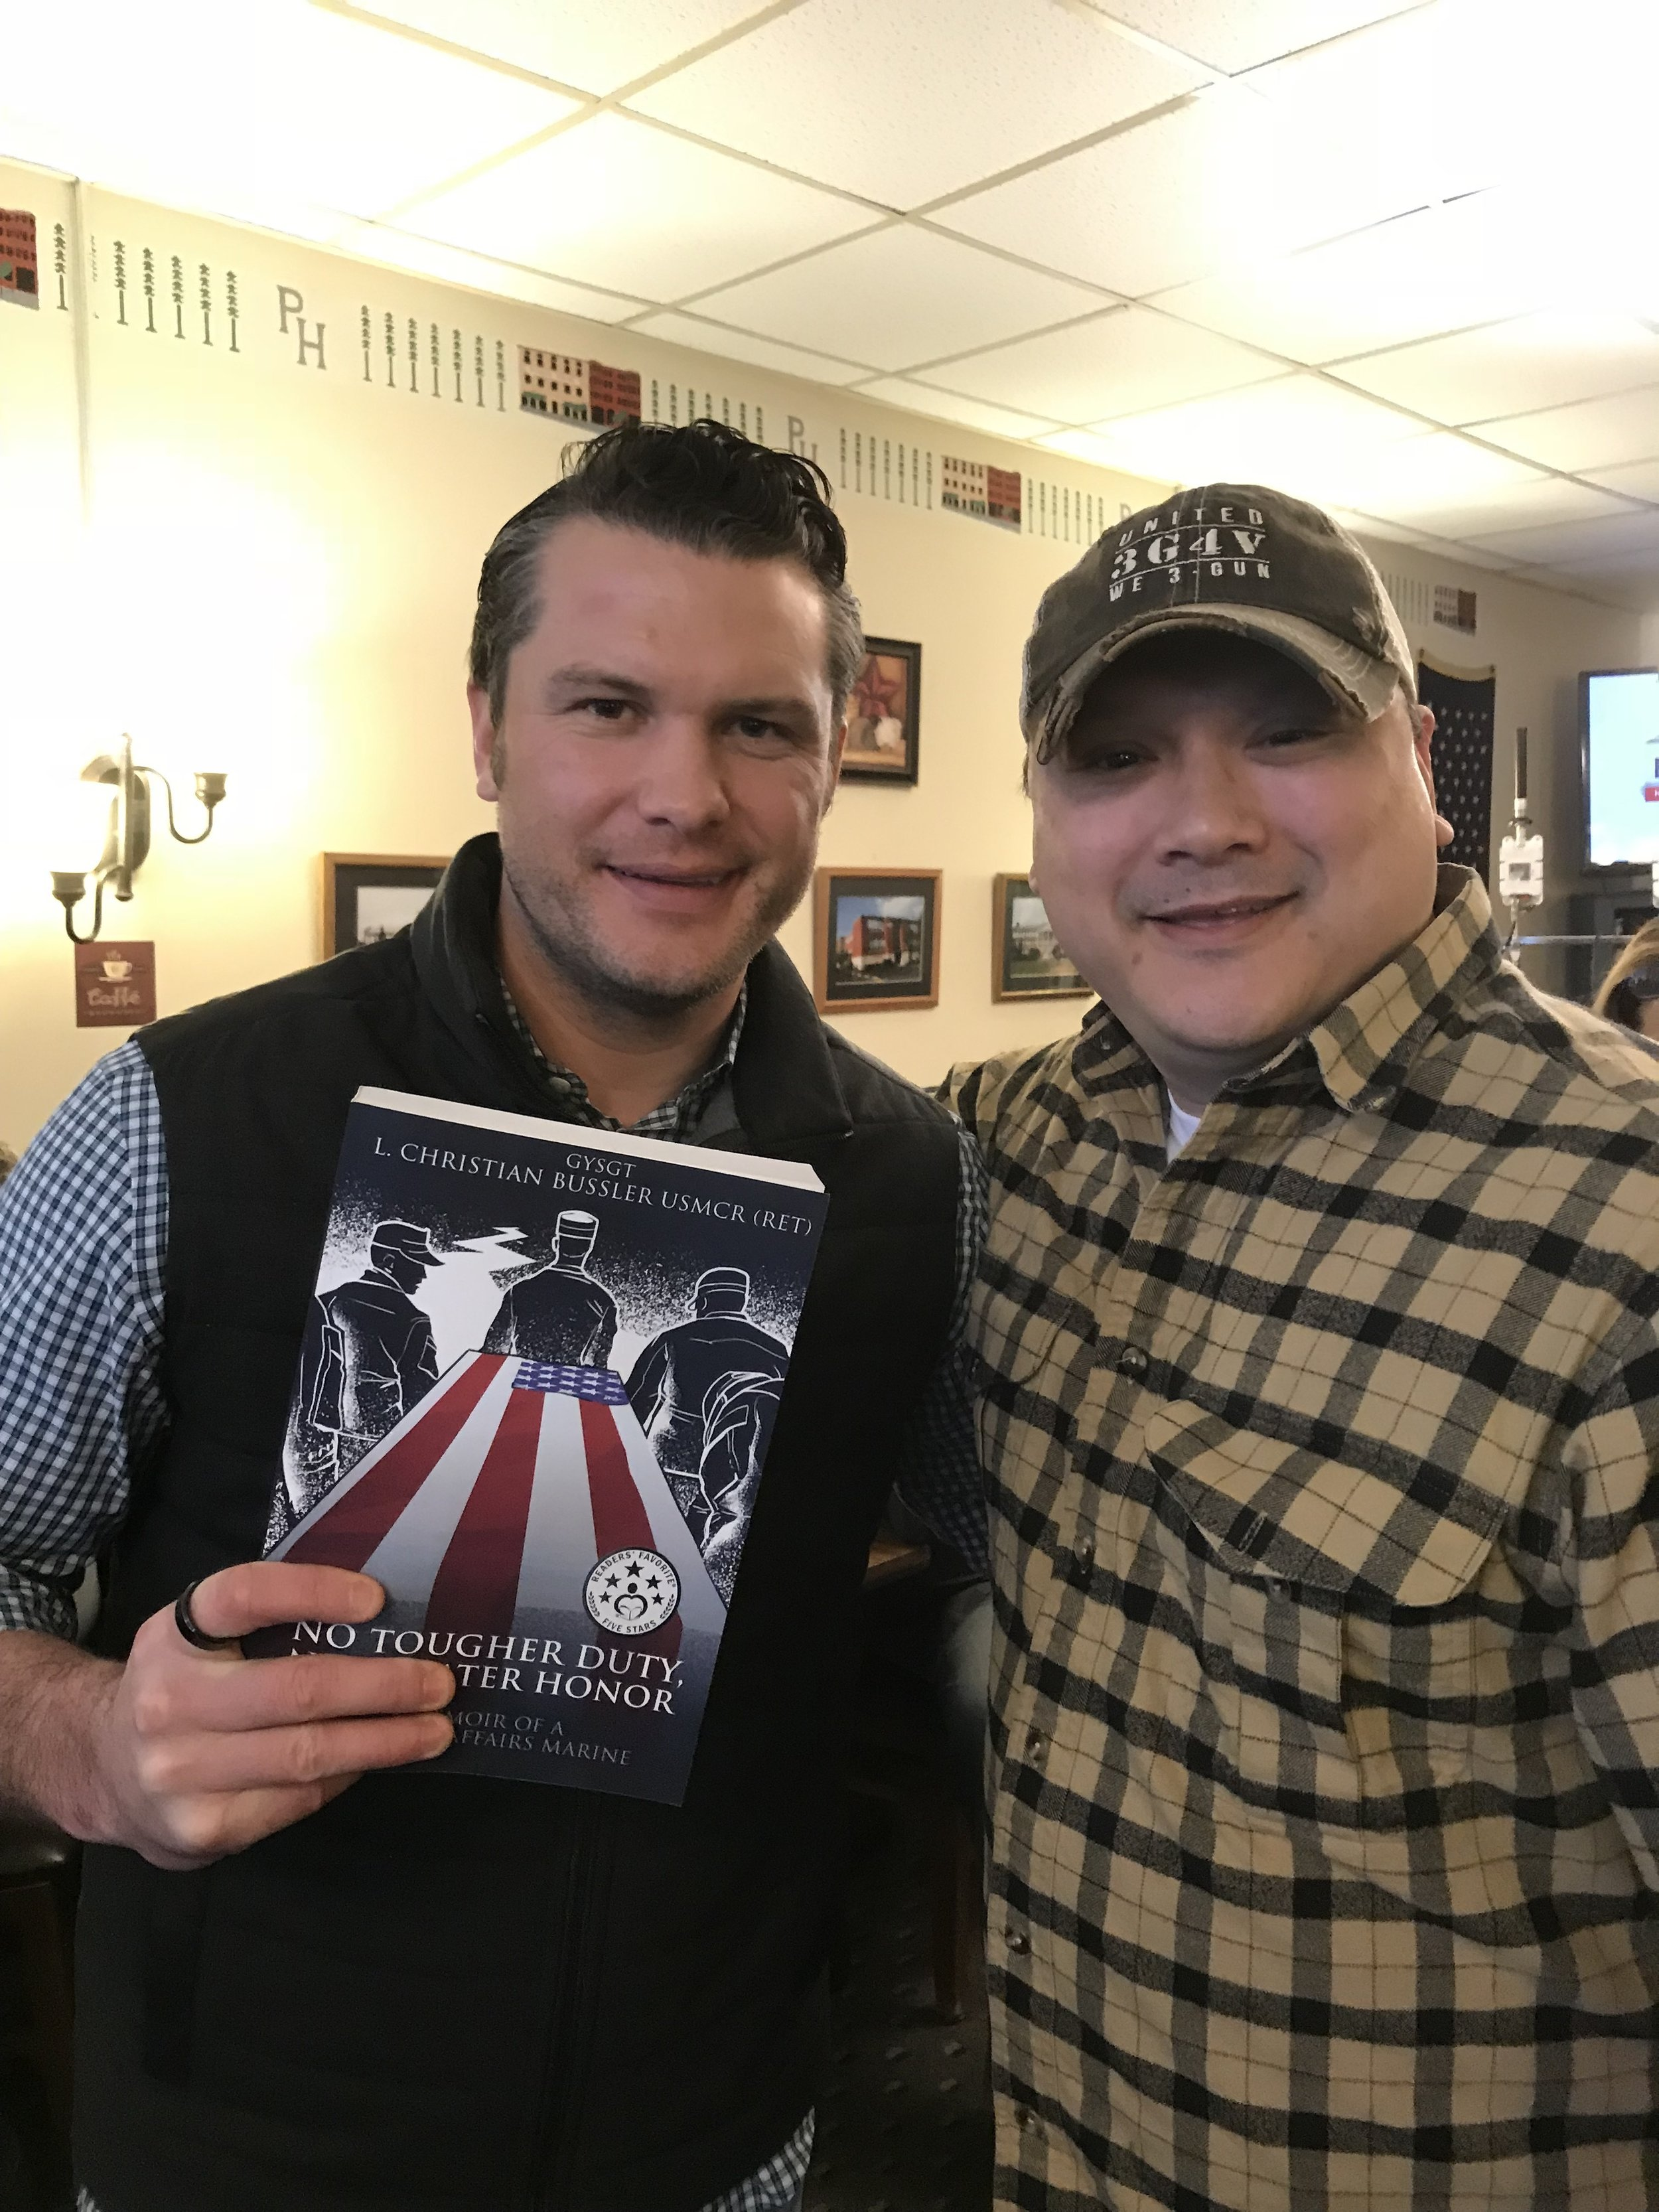 US Army veteran, two time Bronze Star recipient, Pete Hegseth of Fox & Friends